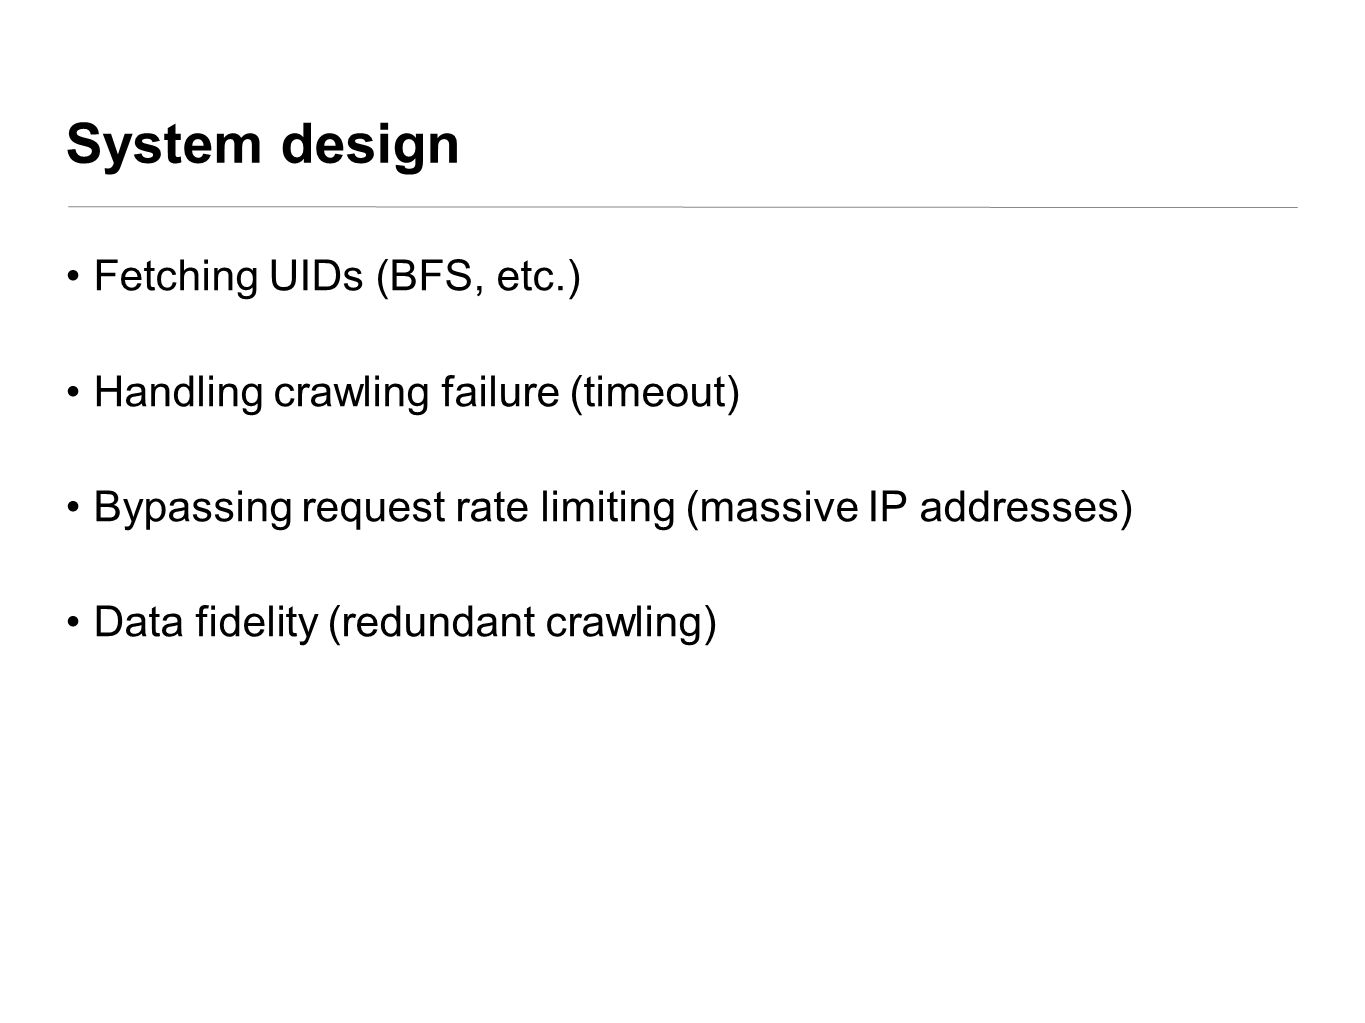 System design Fetching UIDs (BFS, etc.) Handling crawling failure (timeout) Bypassing request rate limiting (massive IP addresses) Data fidelity (redu